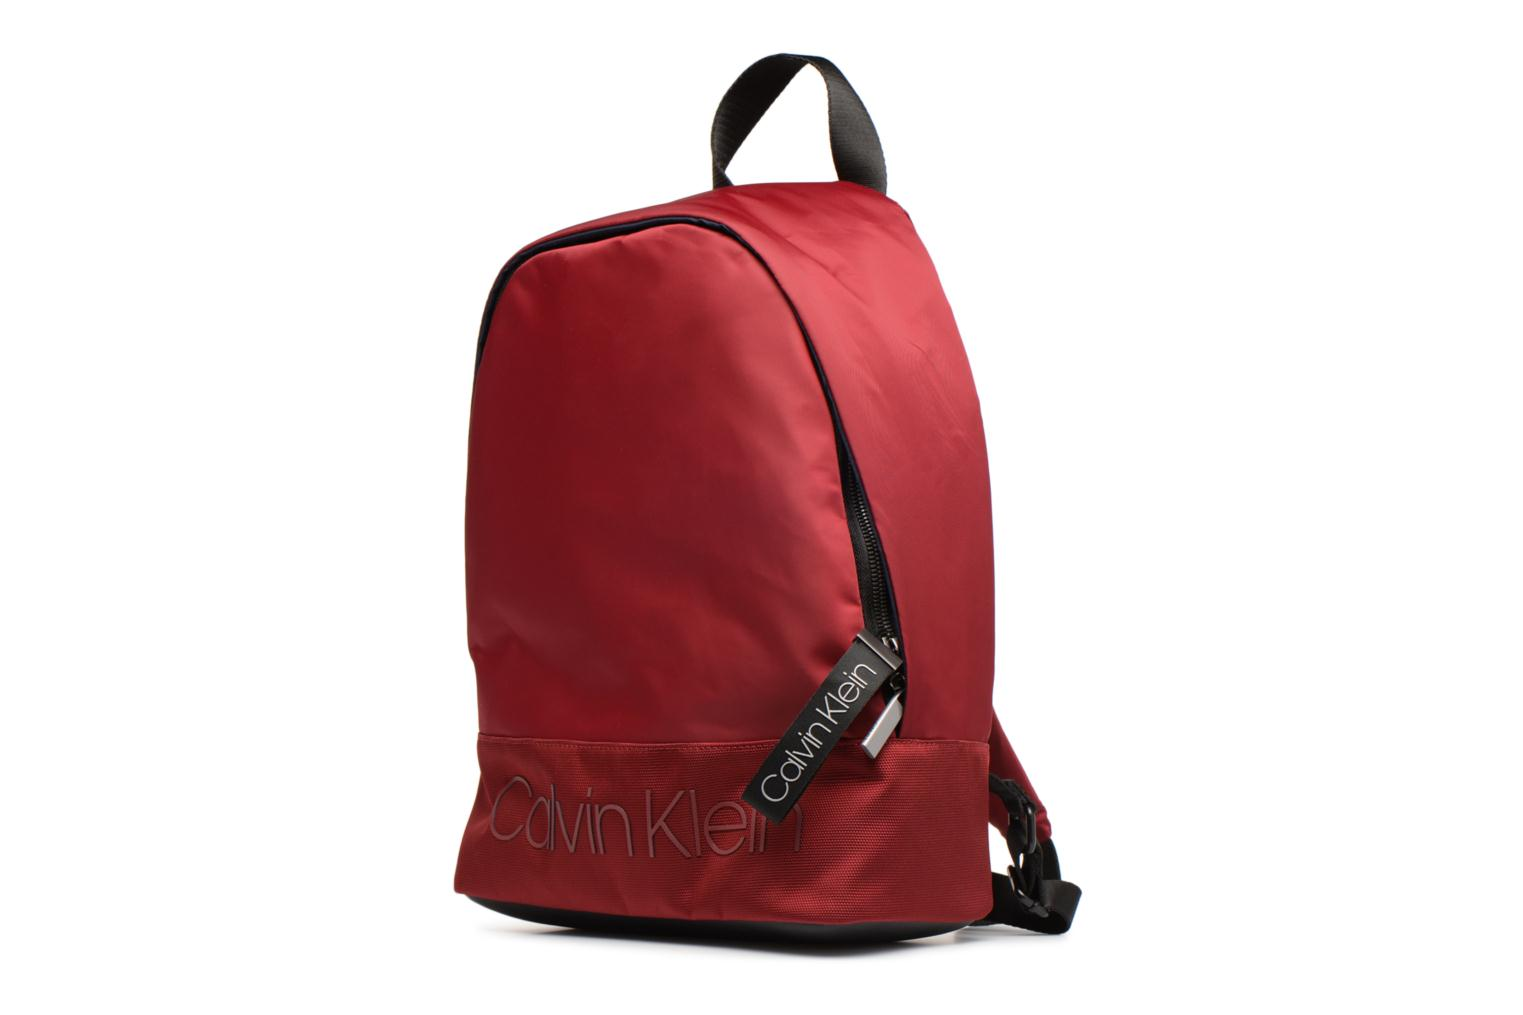 Klein BACKPACK SHADOW ROCK ROUND Calvin RED H4CqUPnw